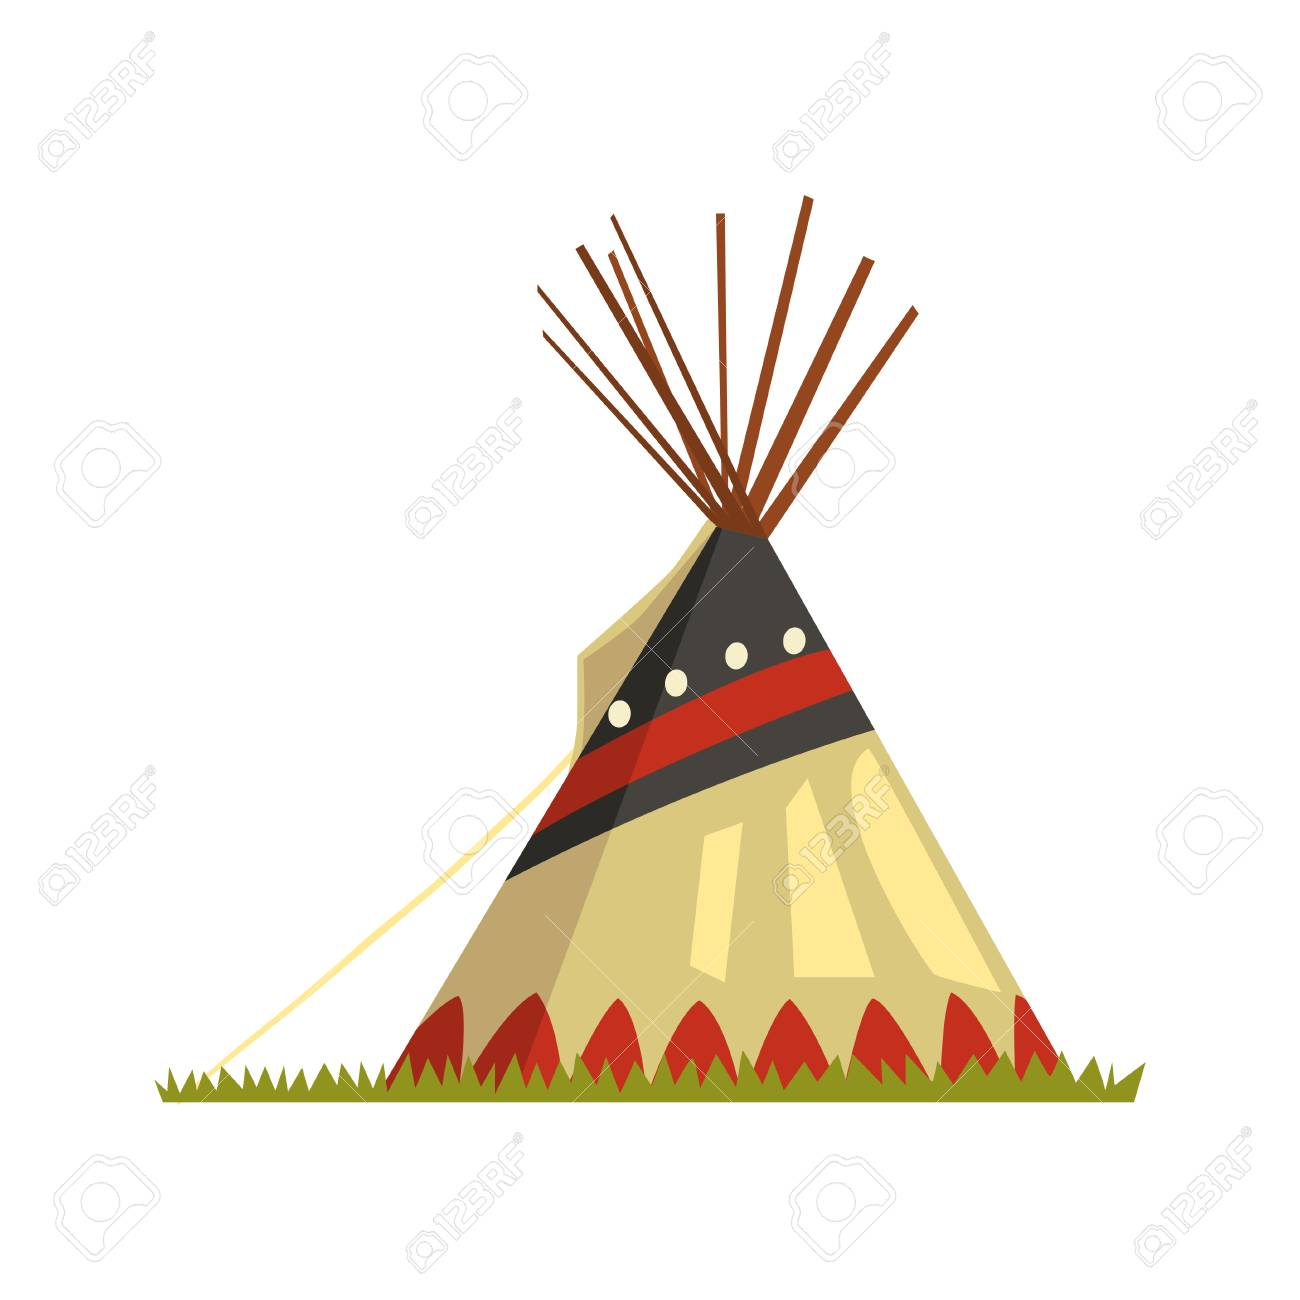 Teepee, tent or wigwam Native American dwelling vector illustration...